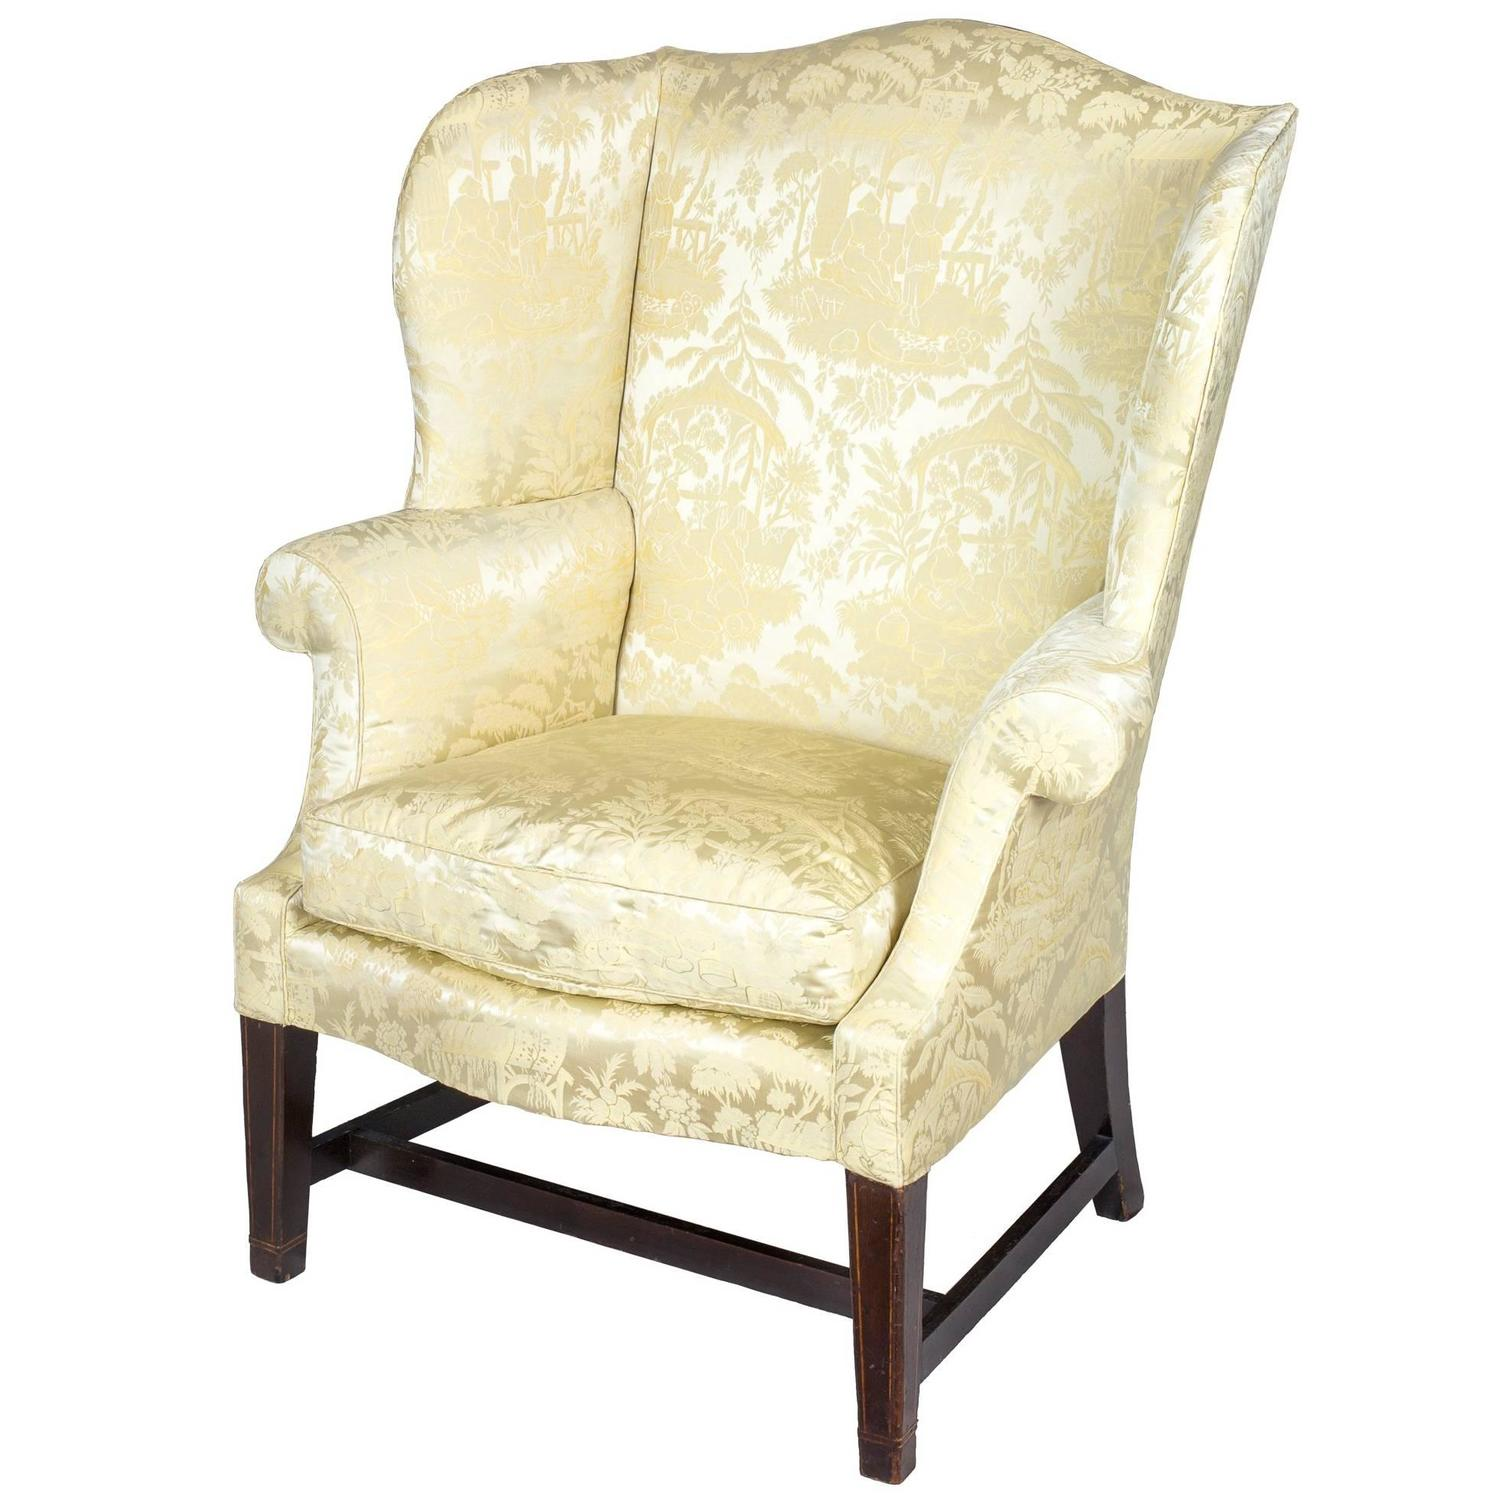 Wing Back Chairs Small Hepplewhite Inlaid Mahogany Wing Chair Philadelphia Israel Sack